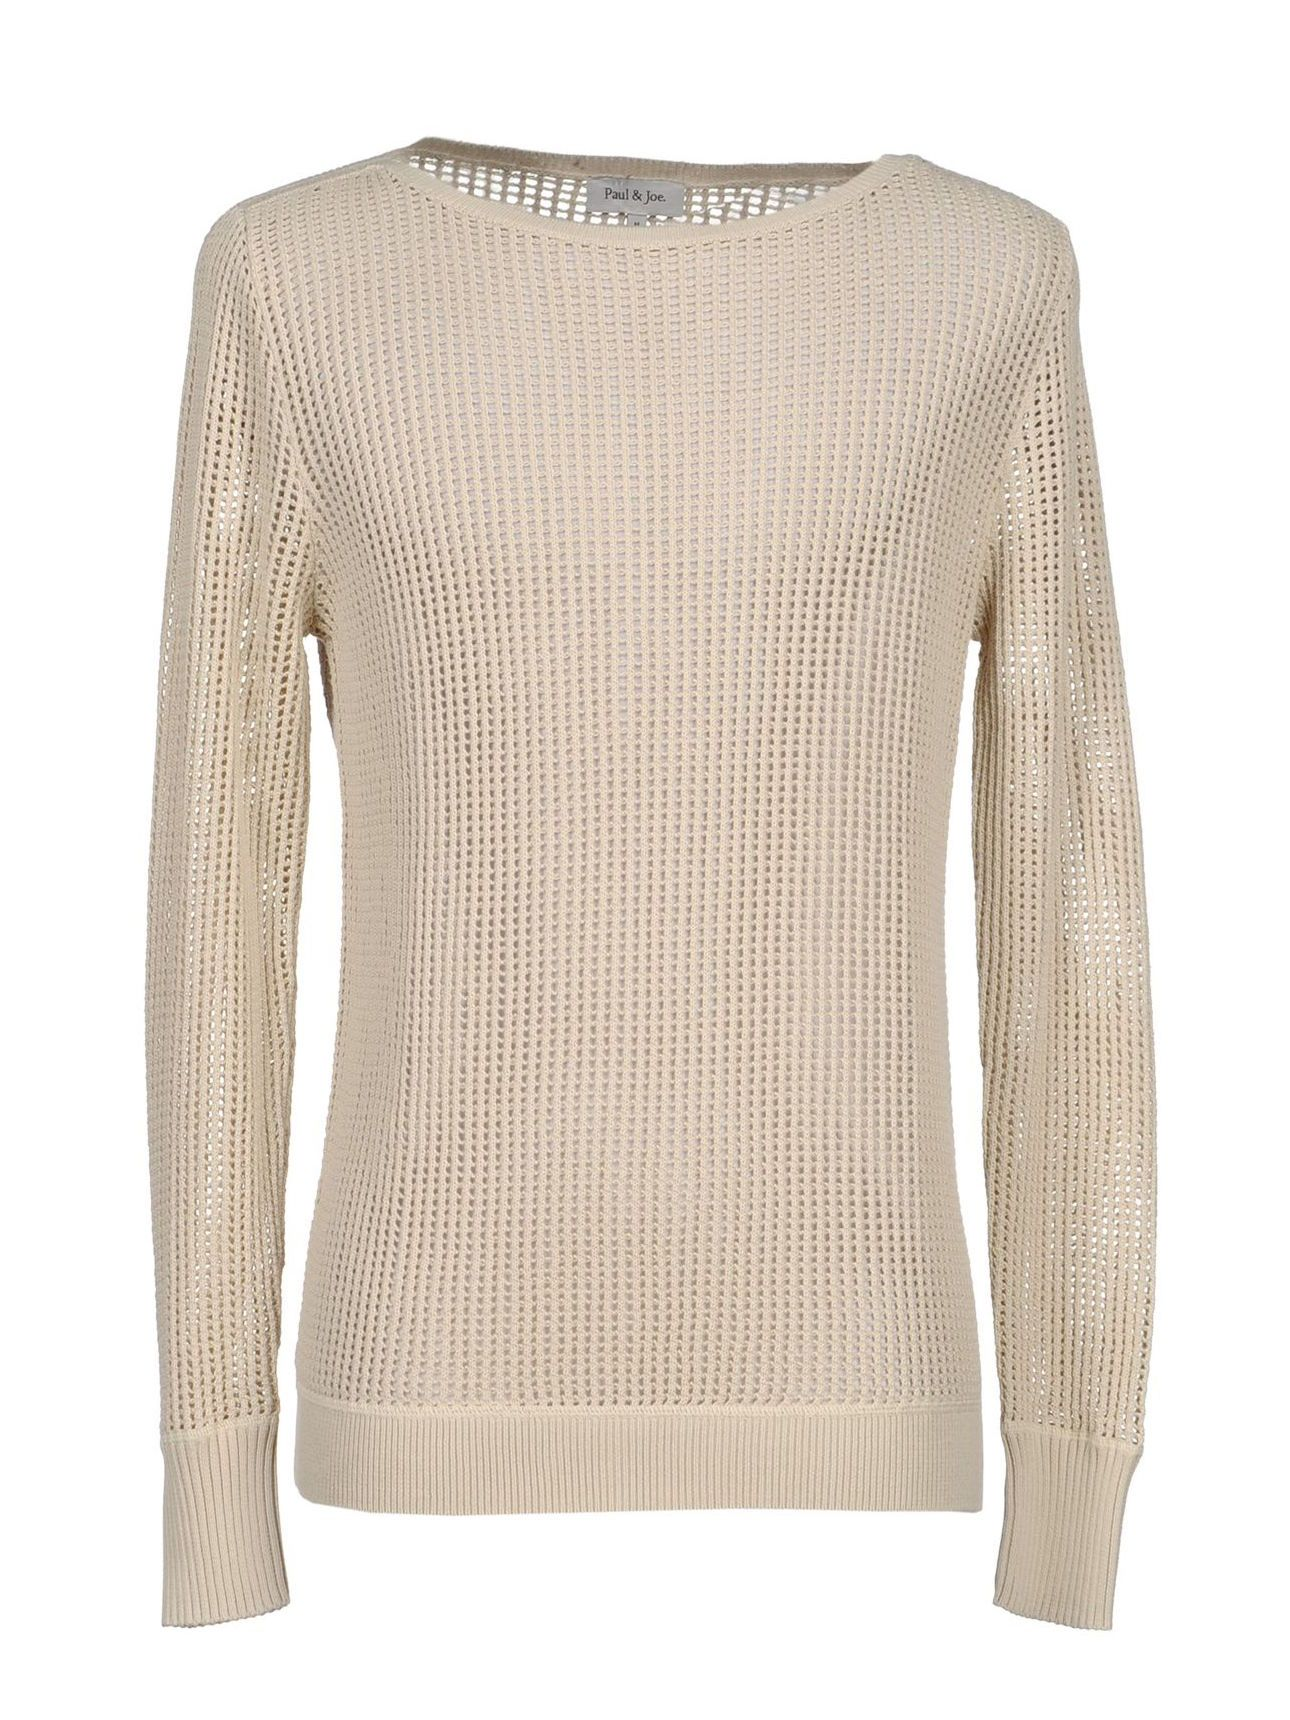 Paul & Joe Men Mesh Cotton Sweater | My Summer Wardrobe | Menswear ...